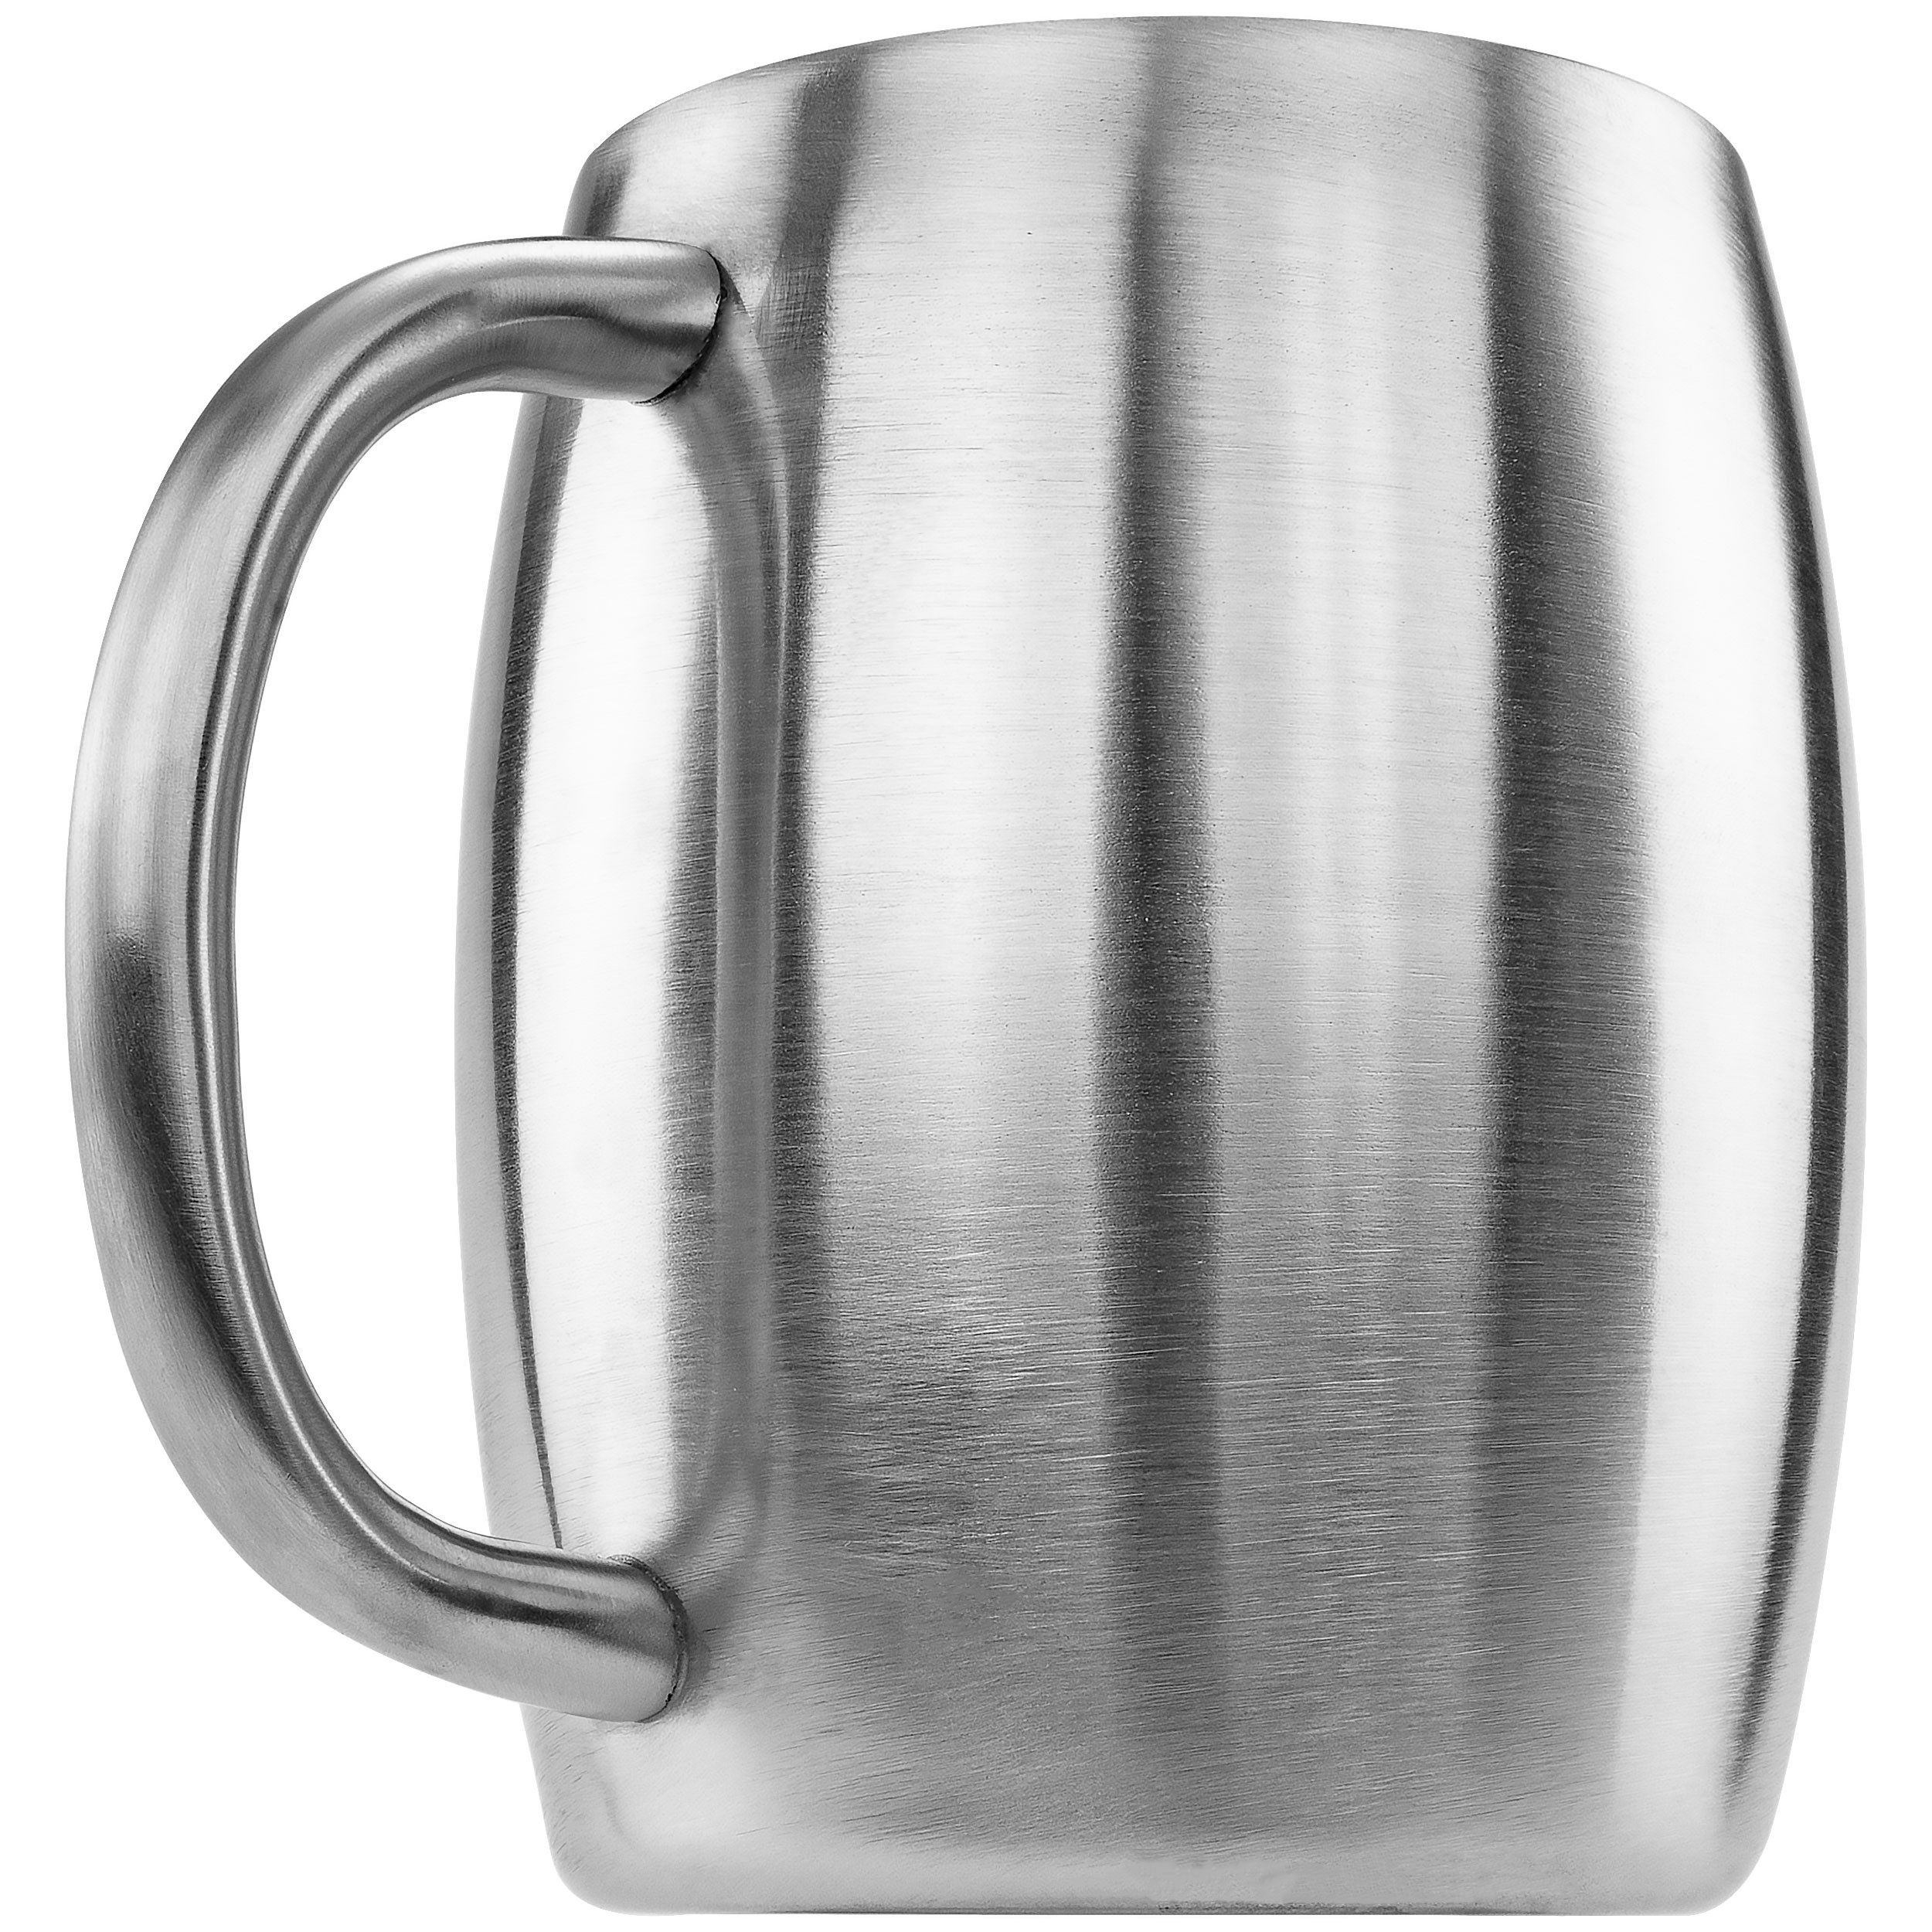 Southern Homewares Stainless Double Wall Steel Beer Coffee Desk Mug Smooth 14-Ounce